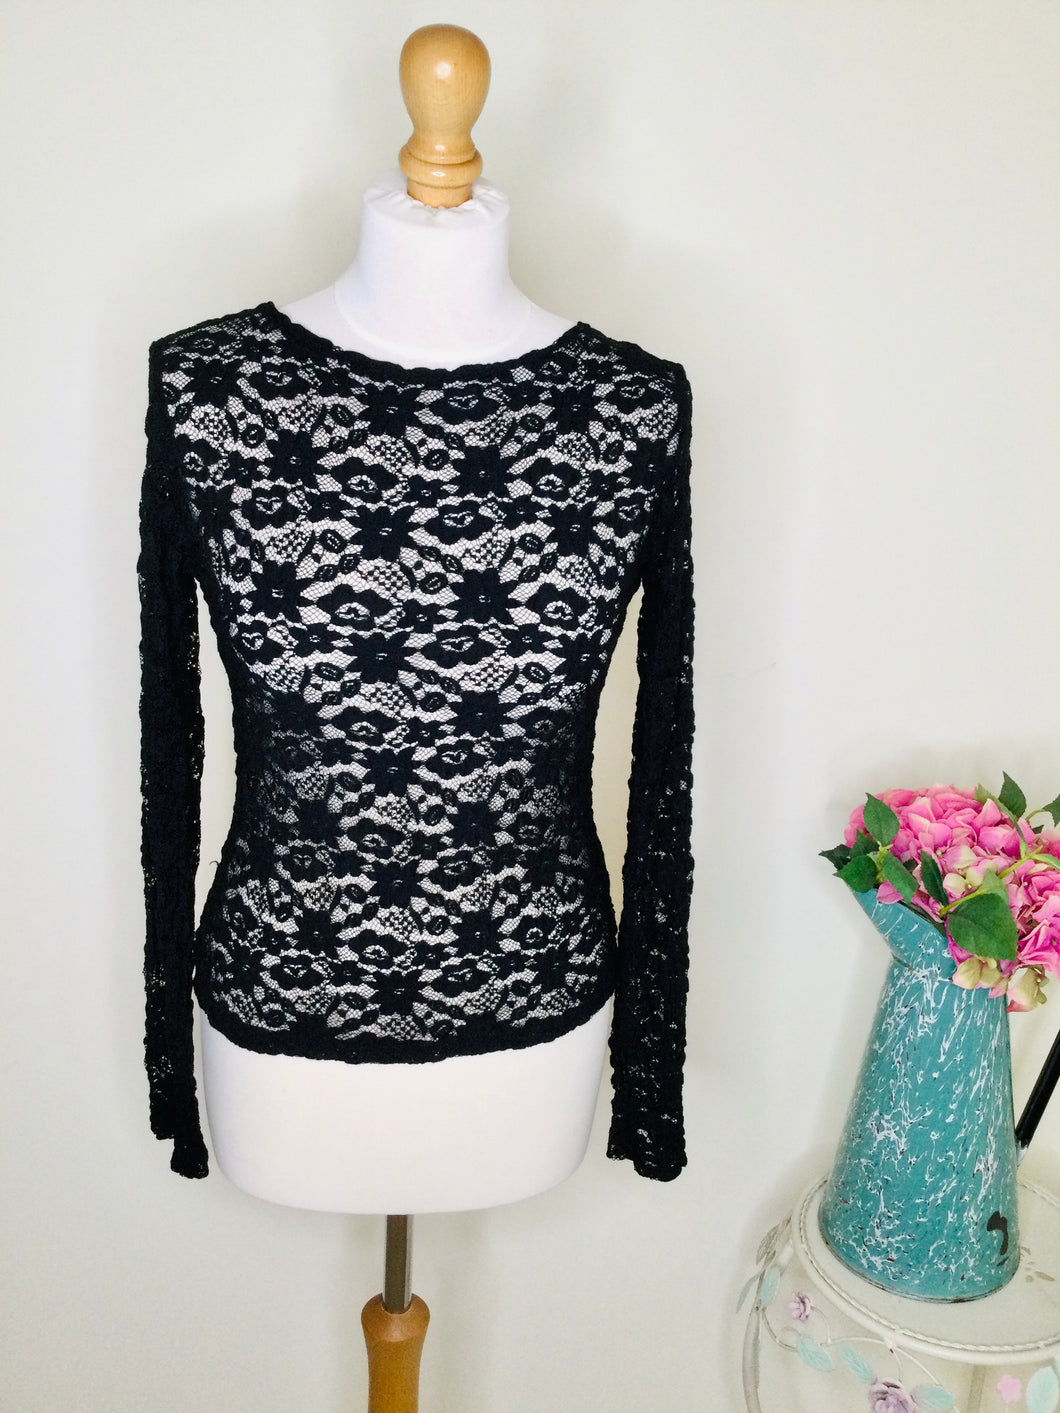 Long sleeved black lace top